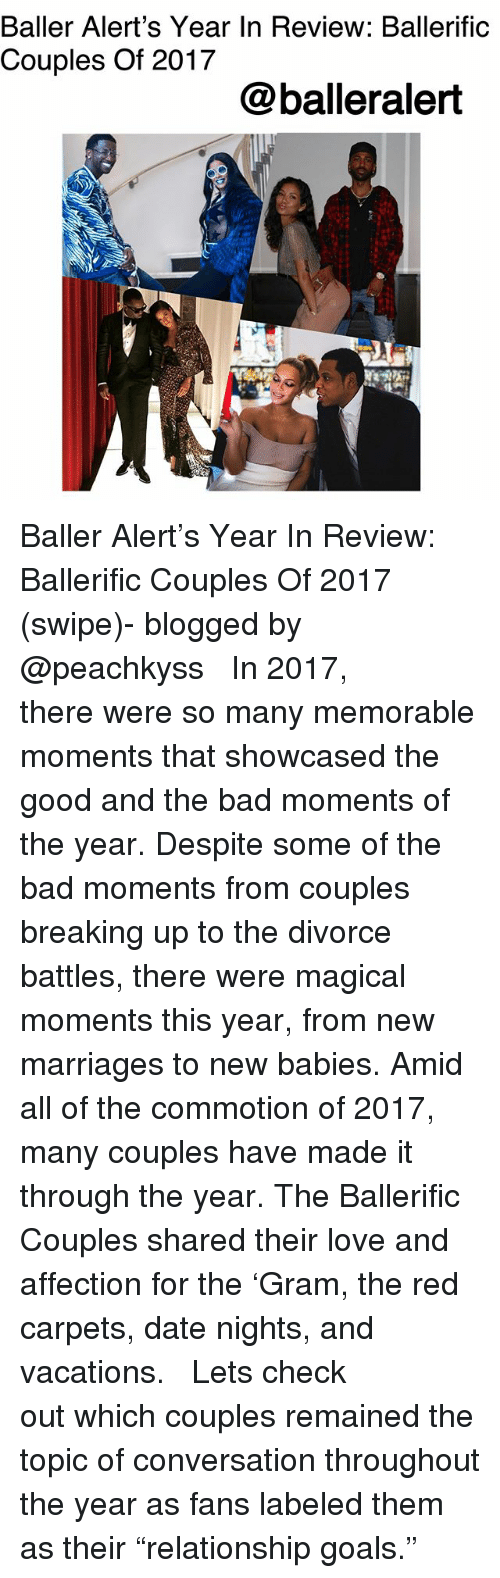 "Bad, Baller Alert, and Goals: Baller Alert's Year In Review: Ballerific  Couples Of 2017  @balleralert Baller Alert's Year In Review: Ballerific Couples Of 2017 (swipe)- blogged by @peachkyss ⠀⠀⠀⠀⠀⠀⠀ ⠀⠀⠀⠀⠀⠀⠀ In 2017, there were so many memorable moments that showcased the good and the bad moments of the year. Despite some of the bad moments from couples breaking up to the divorce battles, there were magical moments this year, from new marriages to new babies. Amid all of the commotion of 2017, many couples have made it through the year. The Ballerific Couples shared their love and affection for the 'Gram, the red carpets, date nights, and vacations. ⠀⠀⠀⠀⠀⠀⠀ ⠀⠀⠀⠀⠀⠀⠀ Lets check out which couples remained the topic of conversation throughout the year as fans labeled them as their ""relationship goals."""